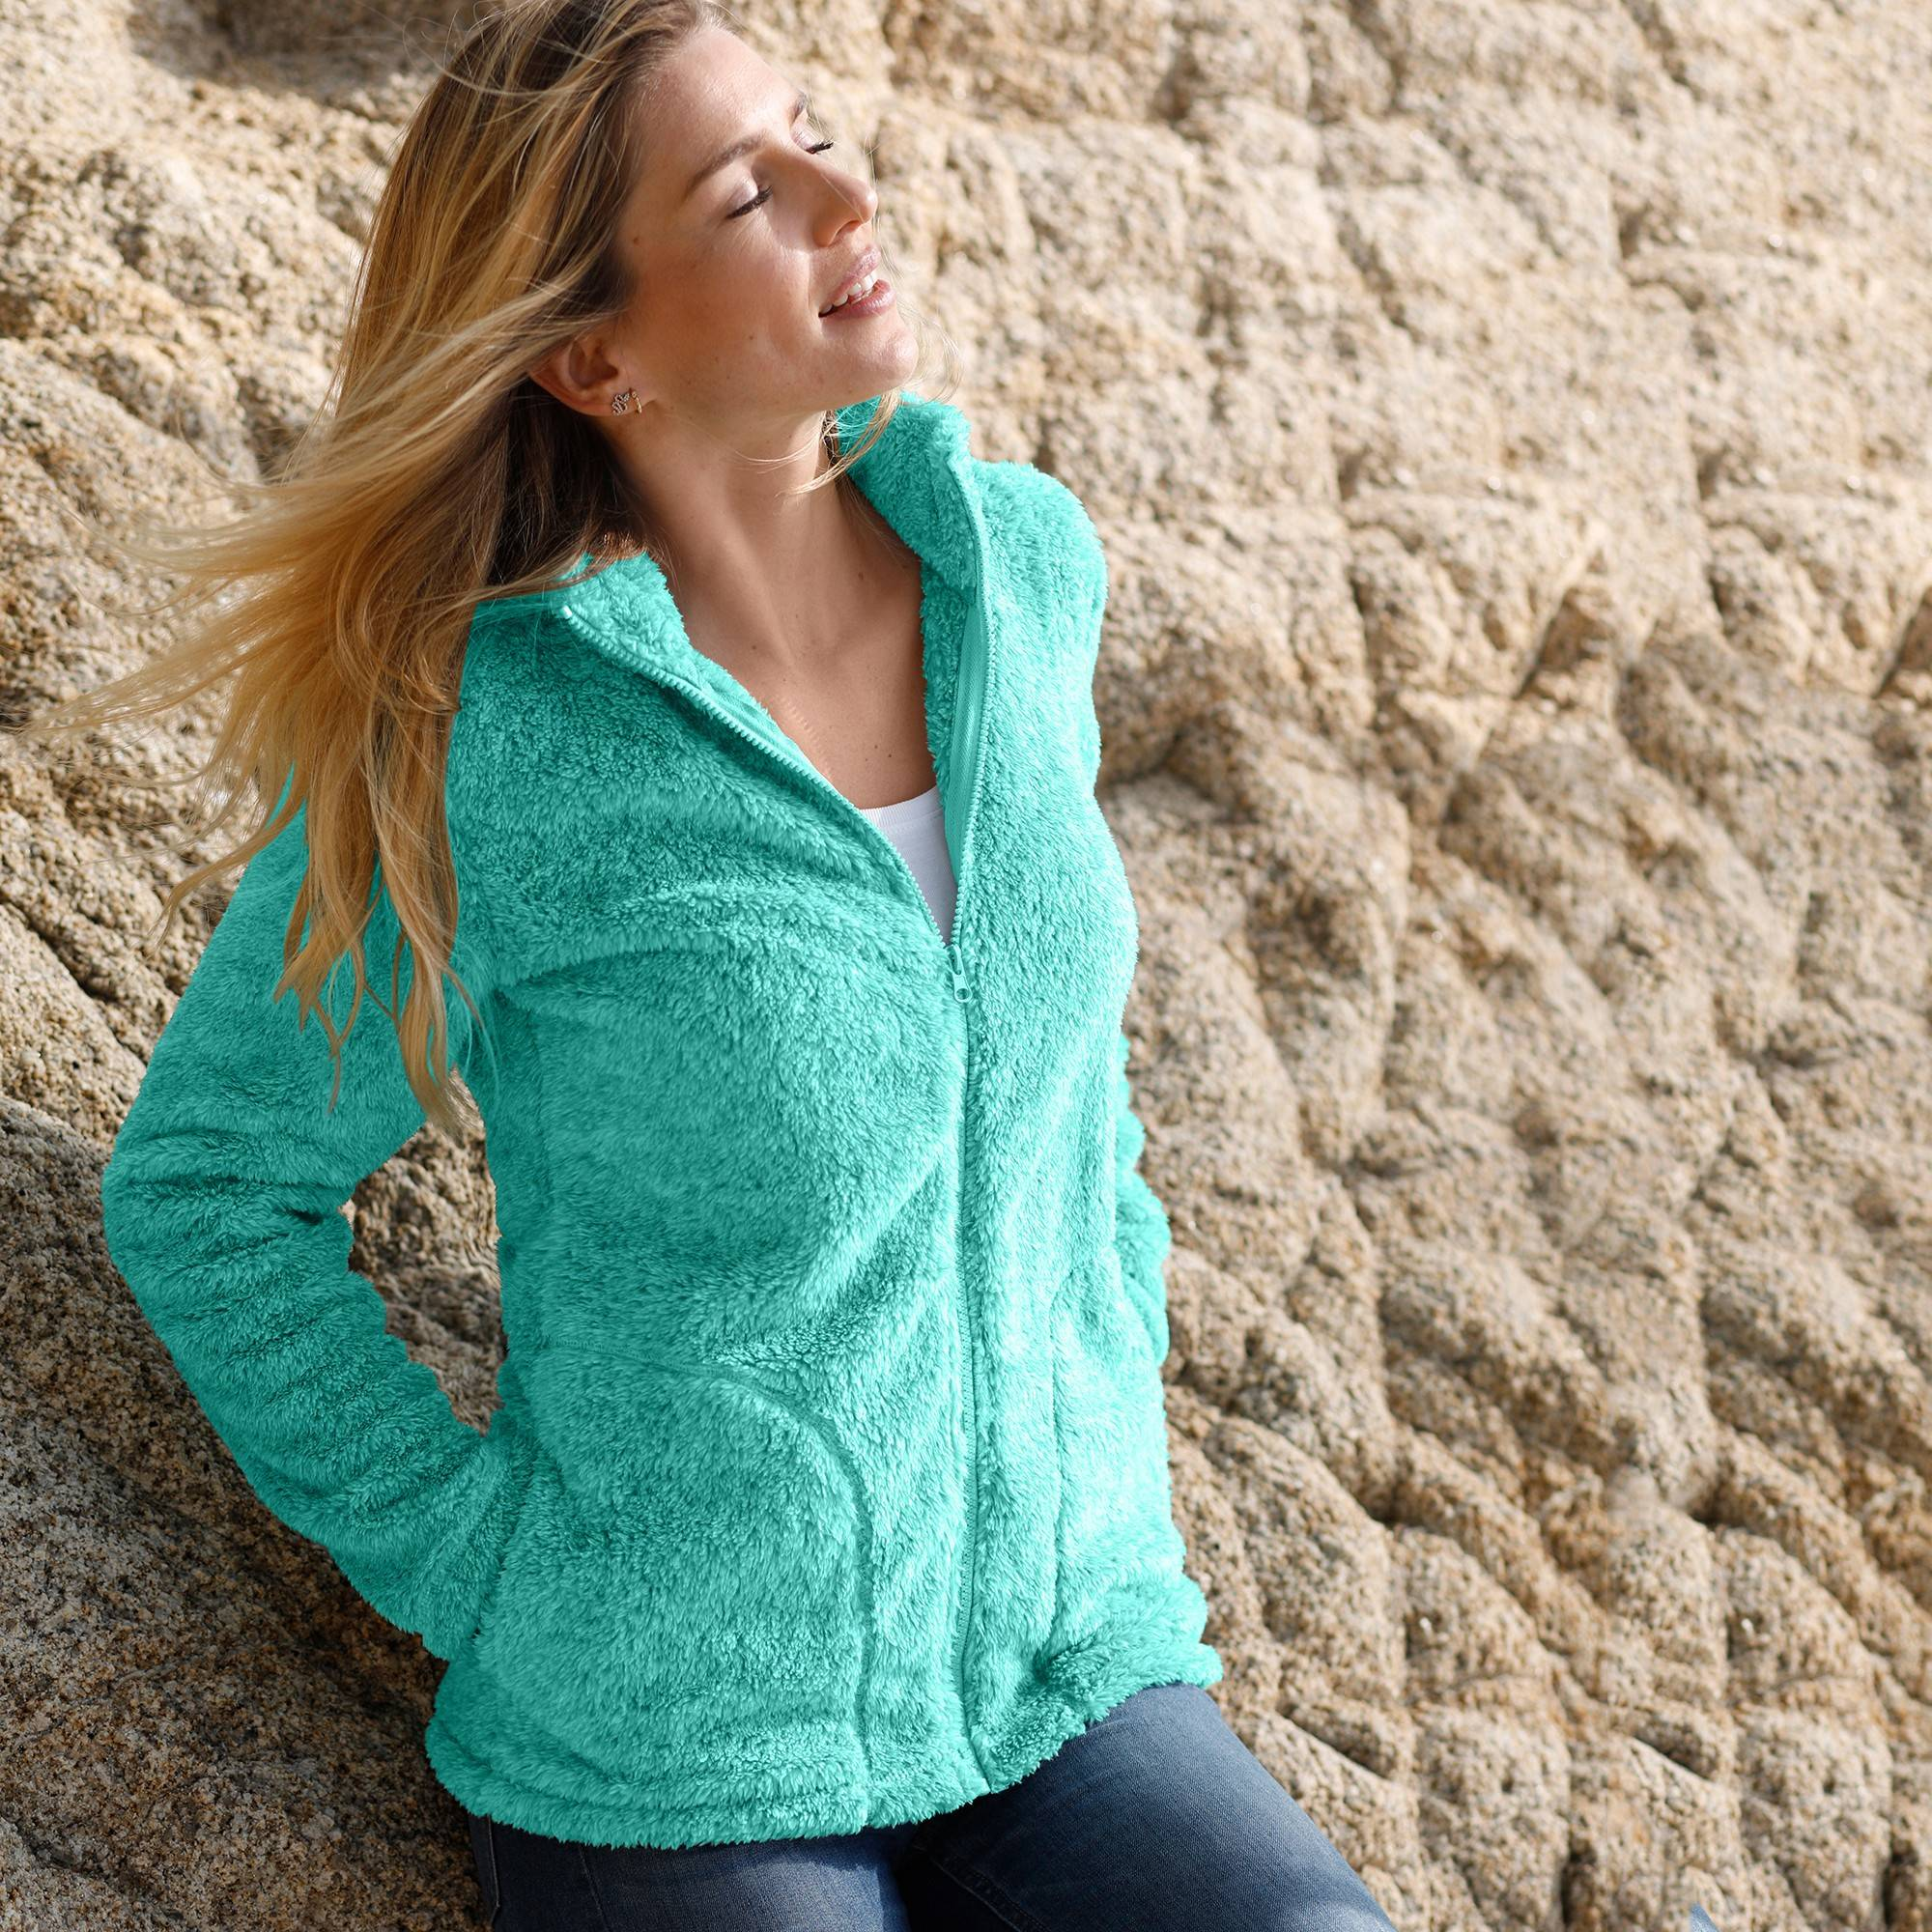 Casual Collection Veste maille peluche - Turquoise - Taille : 34,36 - Blancheporte